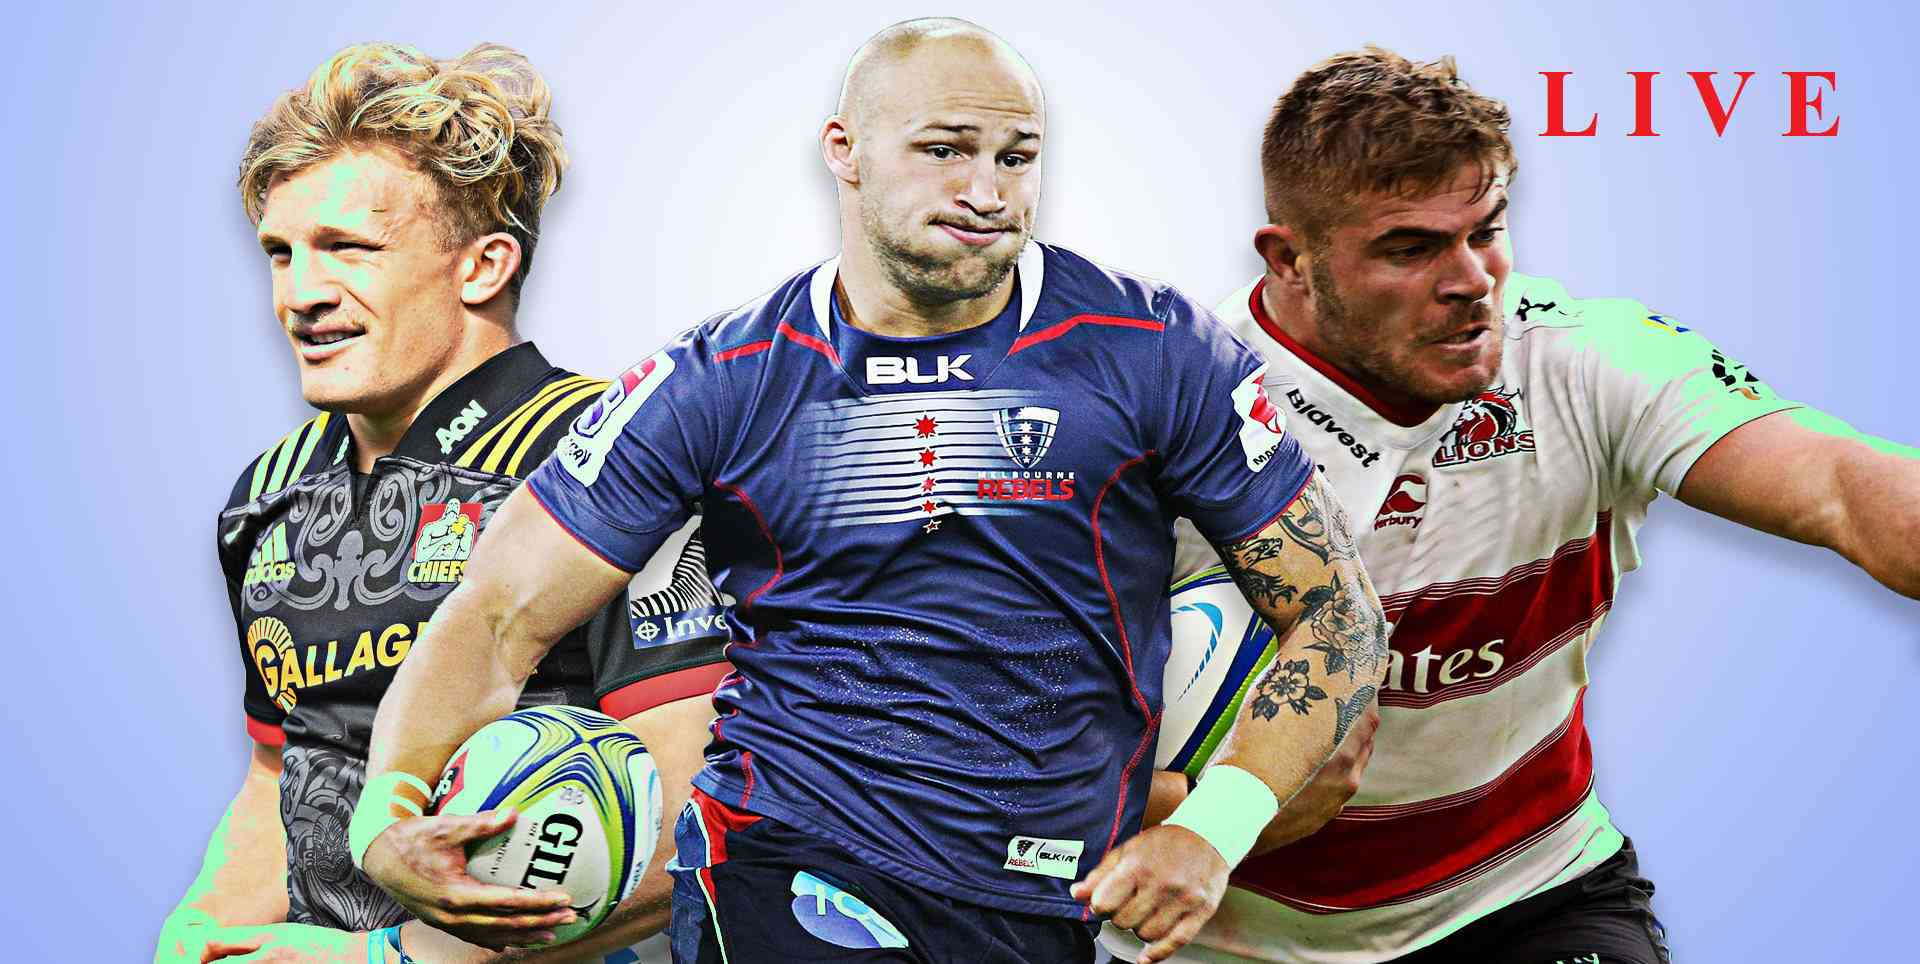 benetton-treviso-vs-bayonne-rugby-live